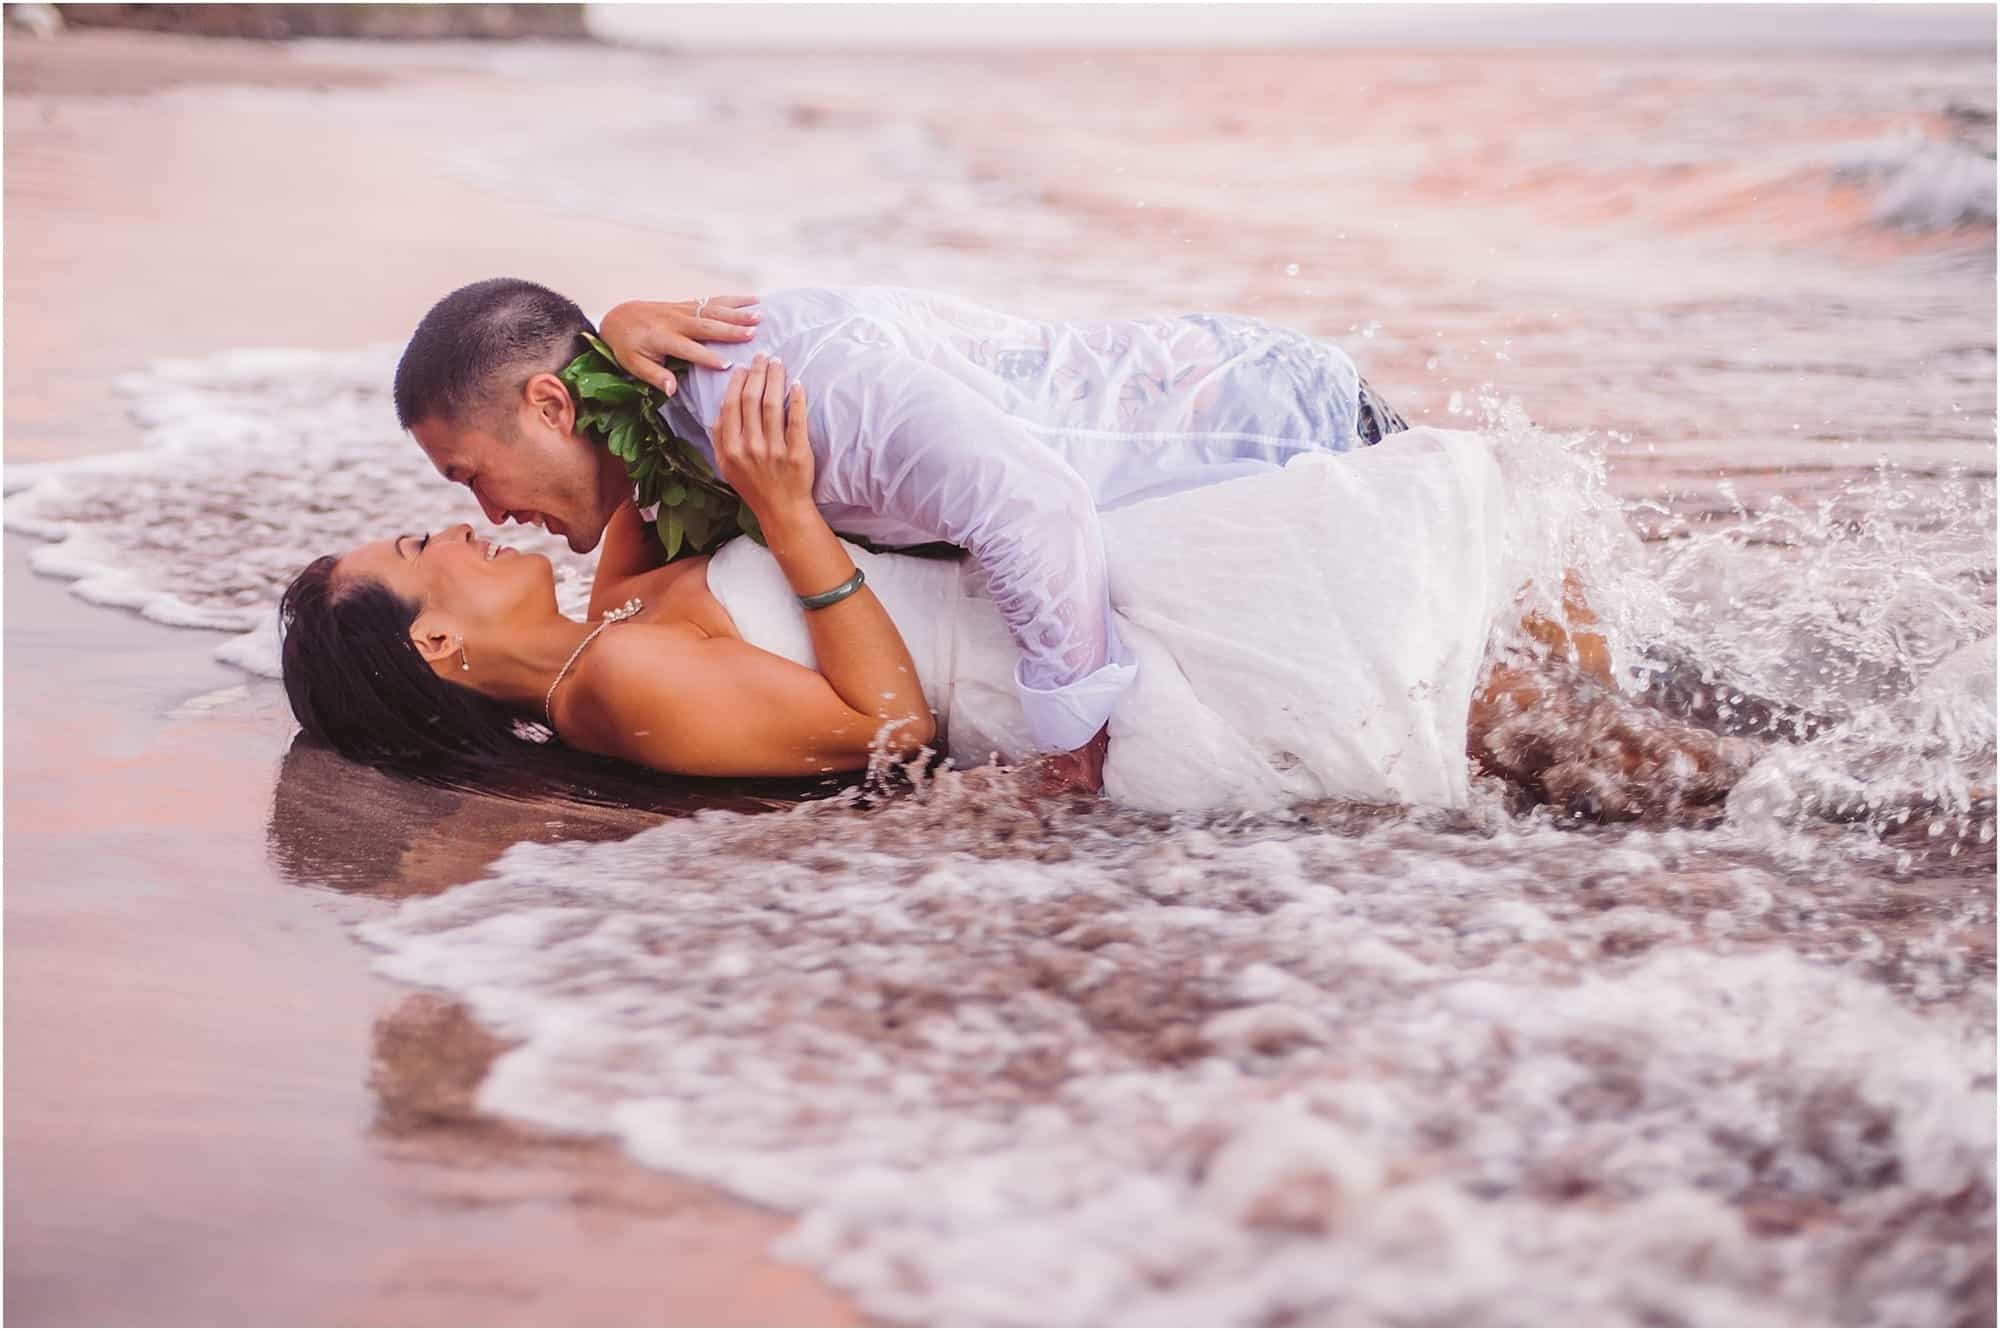 Maui elopement by Mariah Milan and Maile Maui Weddings in Lahaina Hawaii